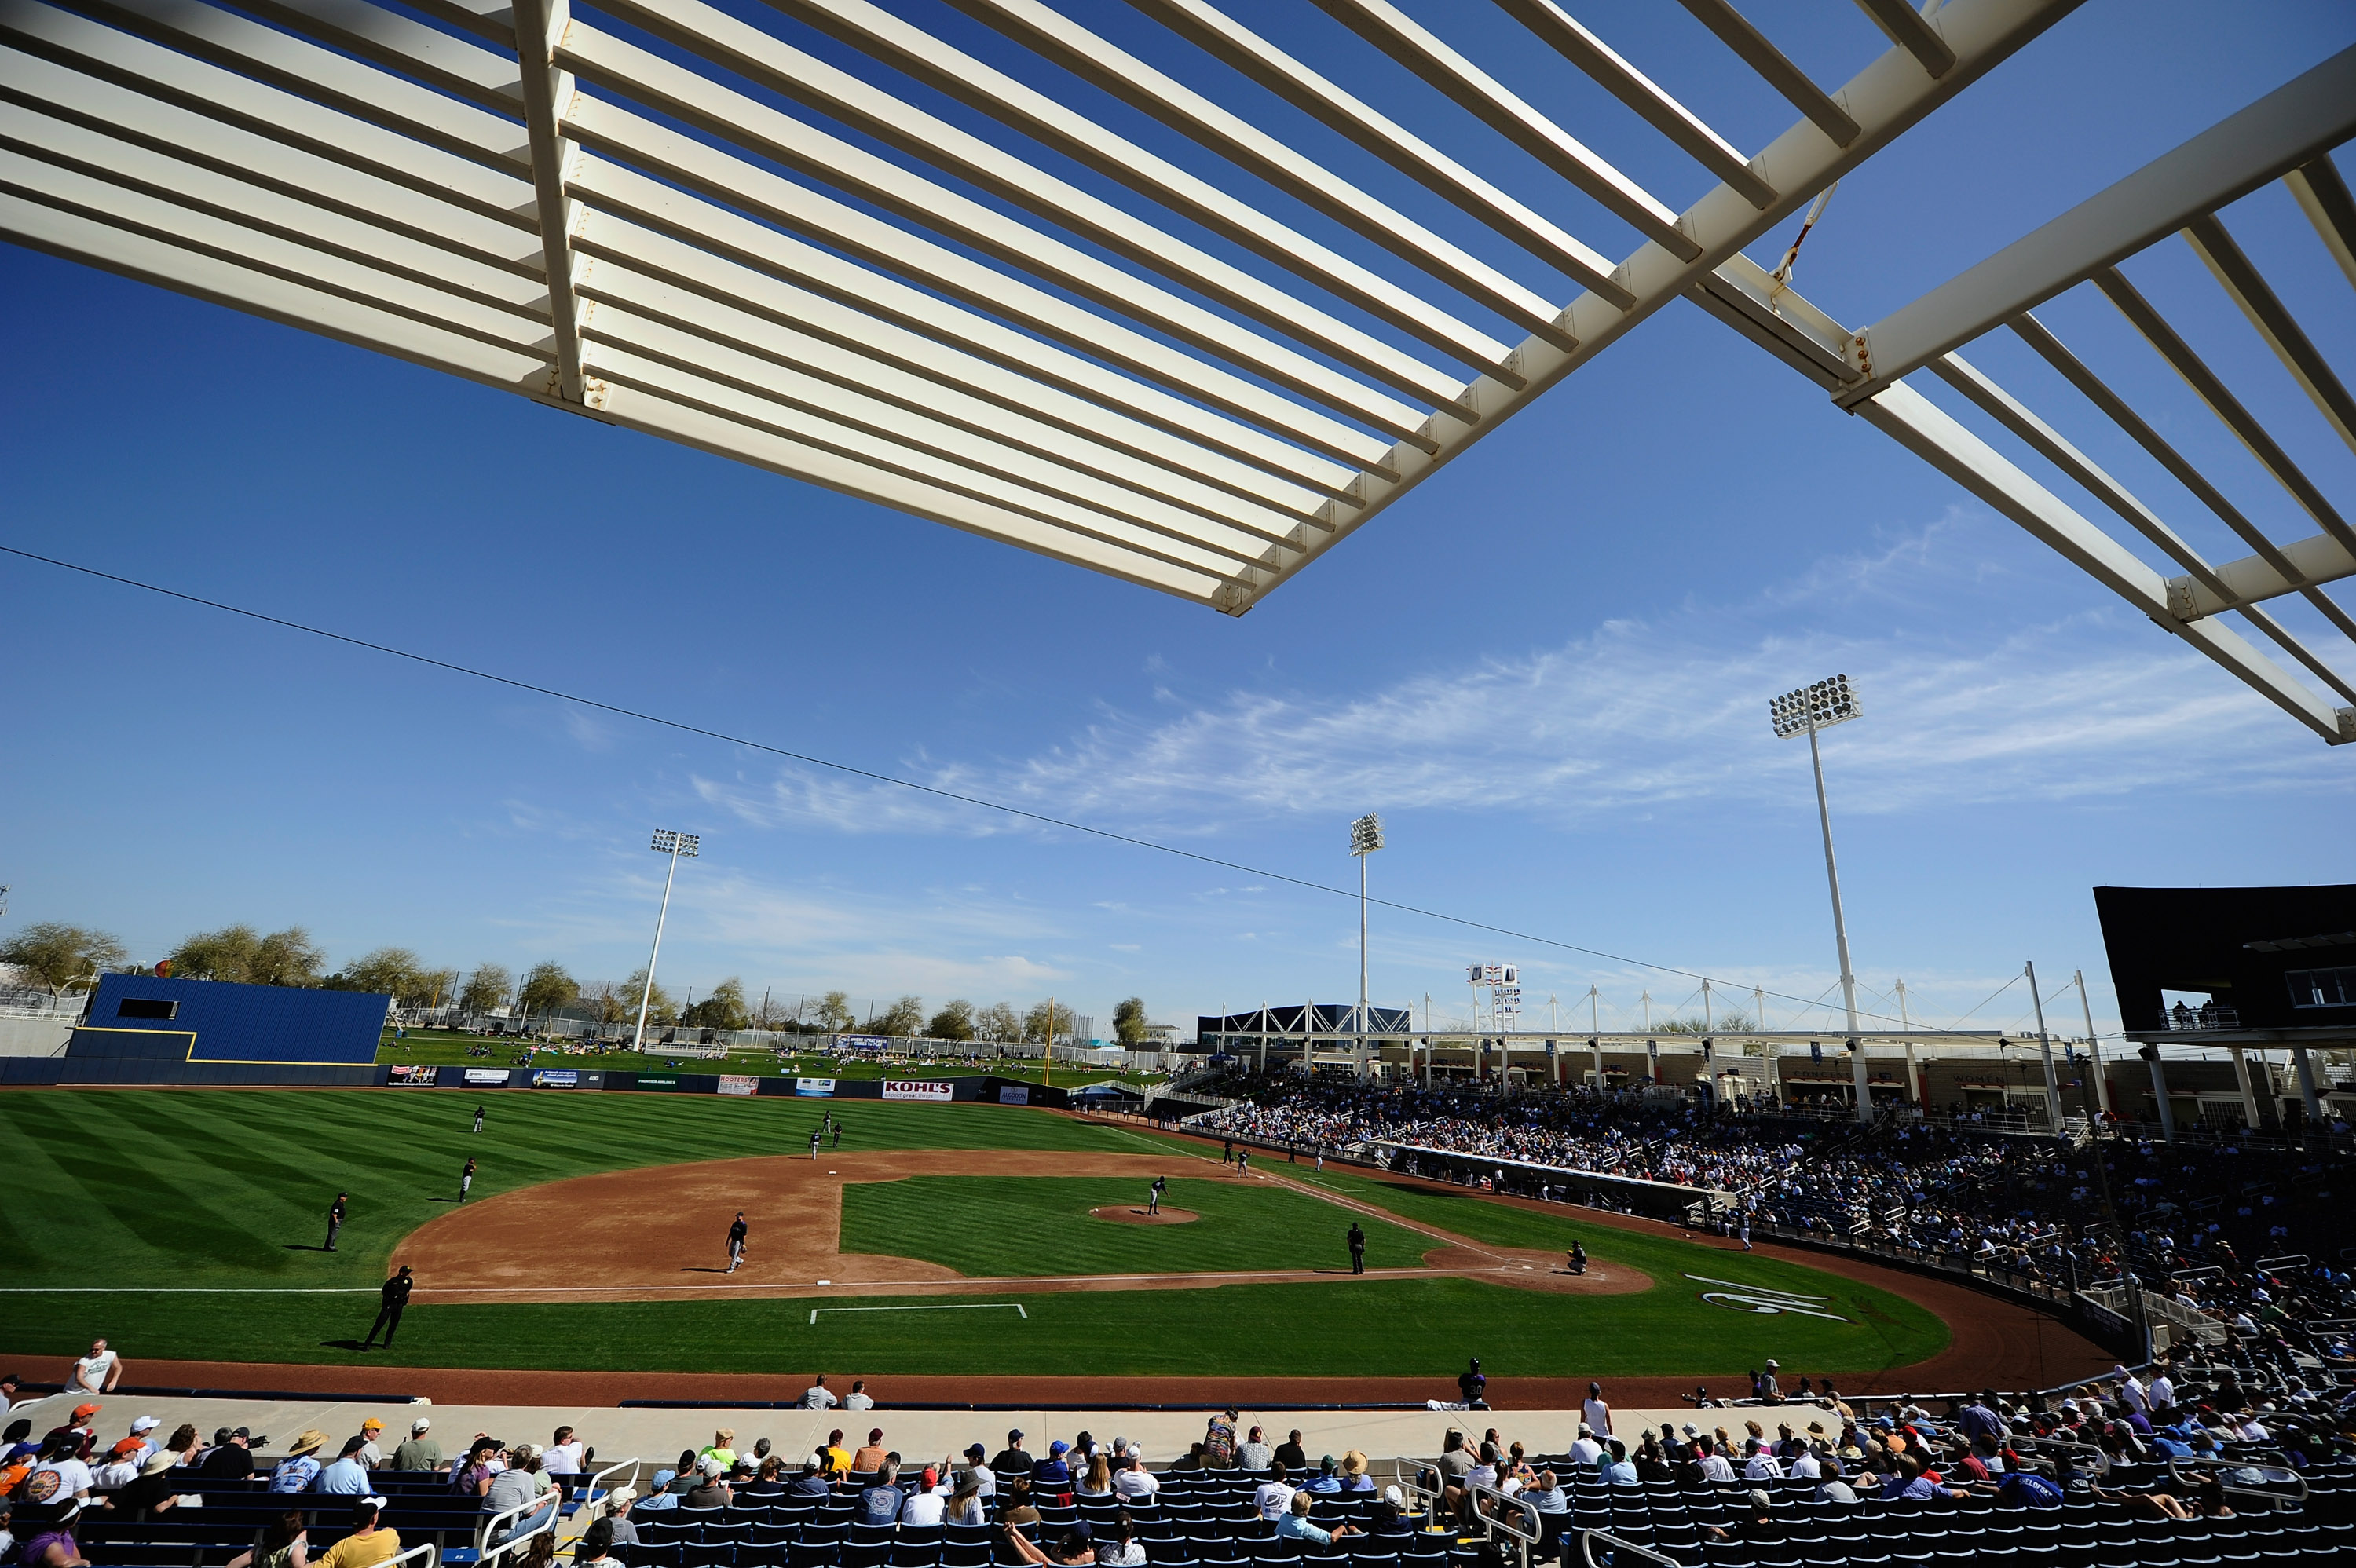 PHOENIX, AZ - MARCH 10:  Milwaukee Brewers and Colorado Rockies during the spring training baseball game at Maryvale Baseball Park on March 10, 2011 in Phoenix, Arizona.  (Photo by Kevork Djansezian/Getty Images)